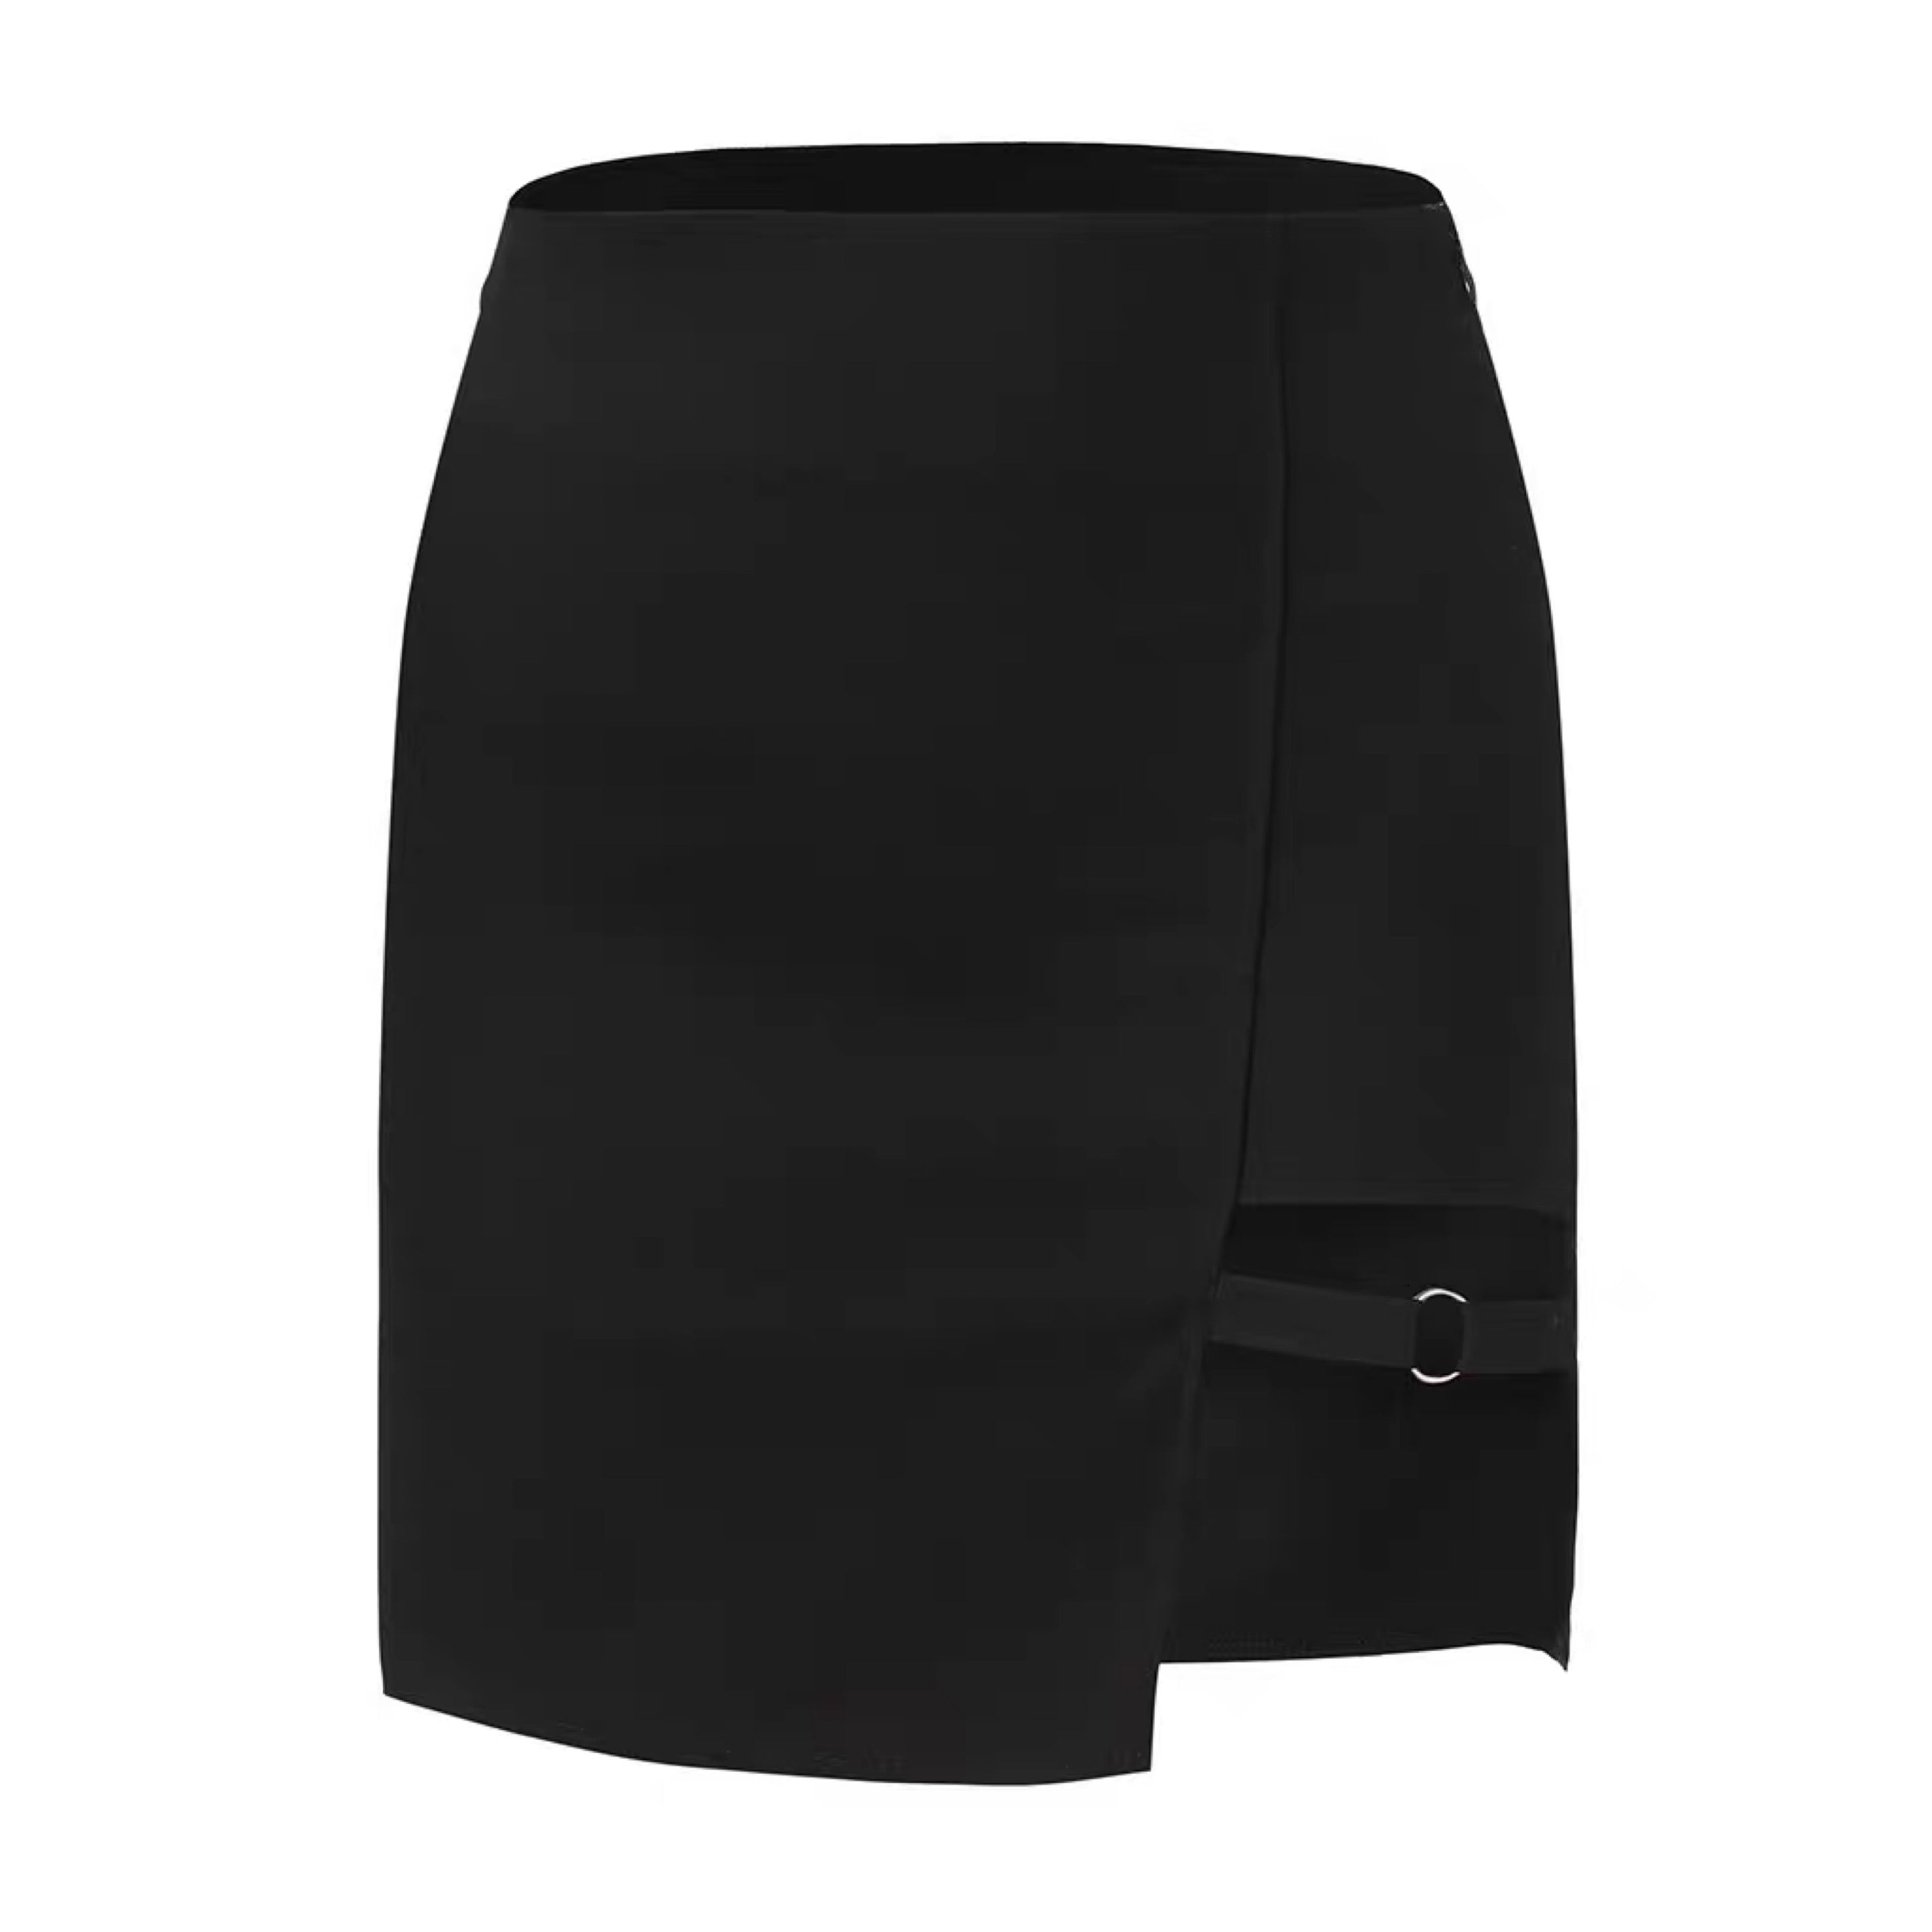 Dominate Asymmetric Goth Skirt